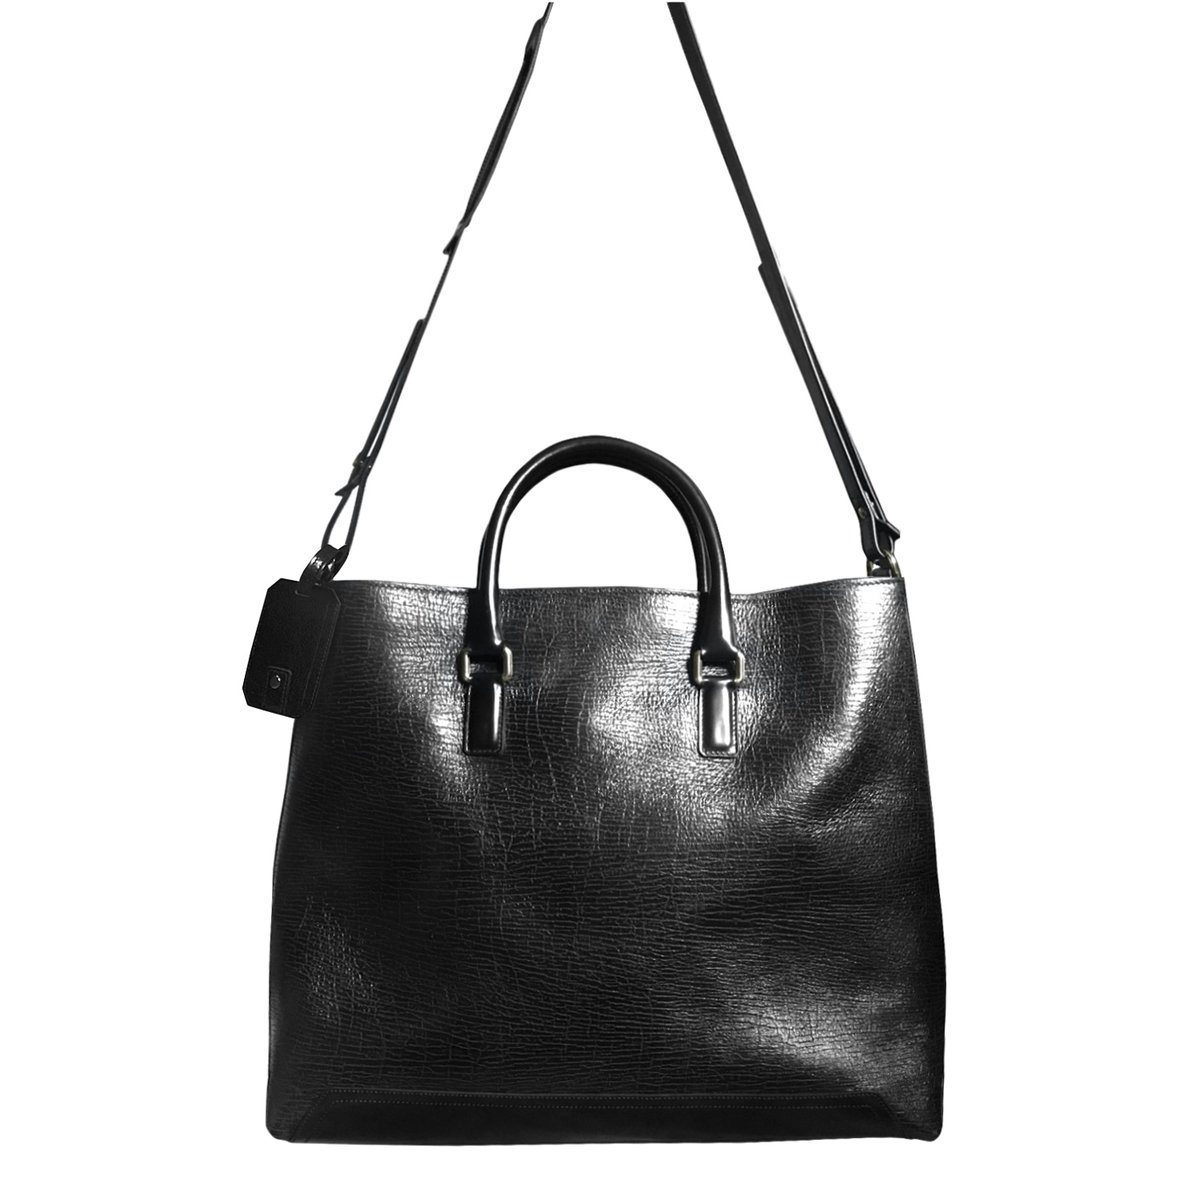 Andrea Incontri Textured Leather Tote Bag.jpg